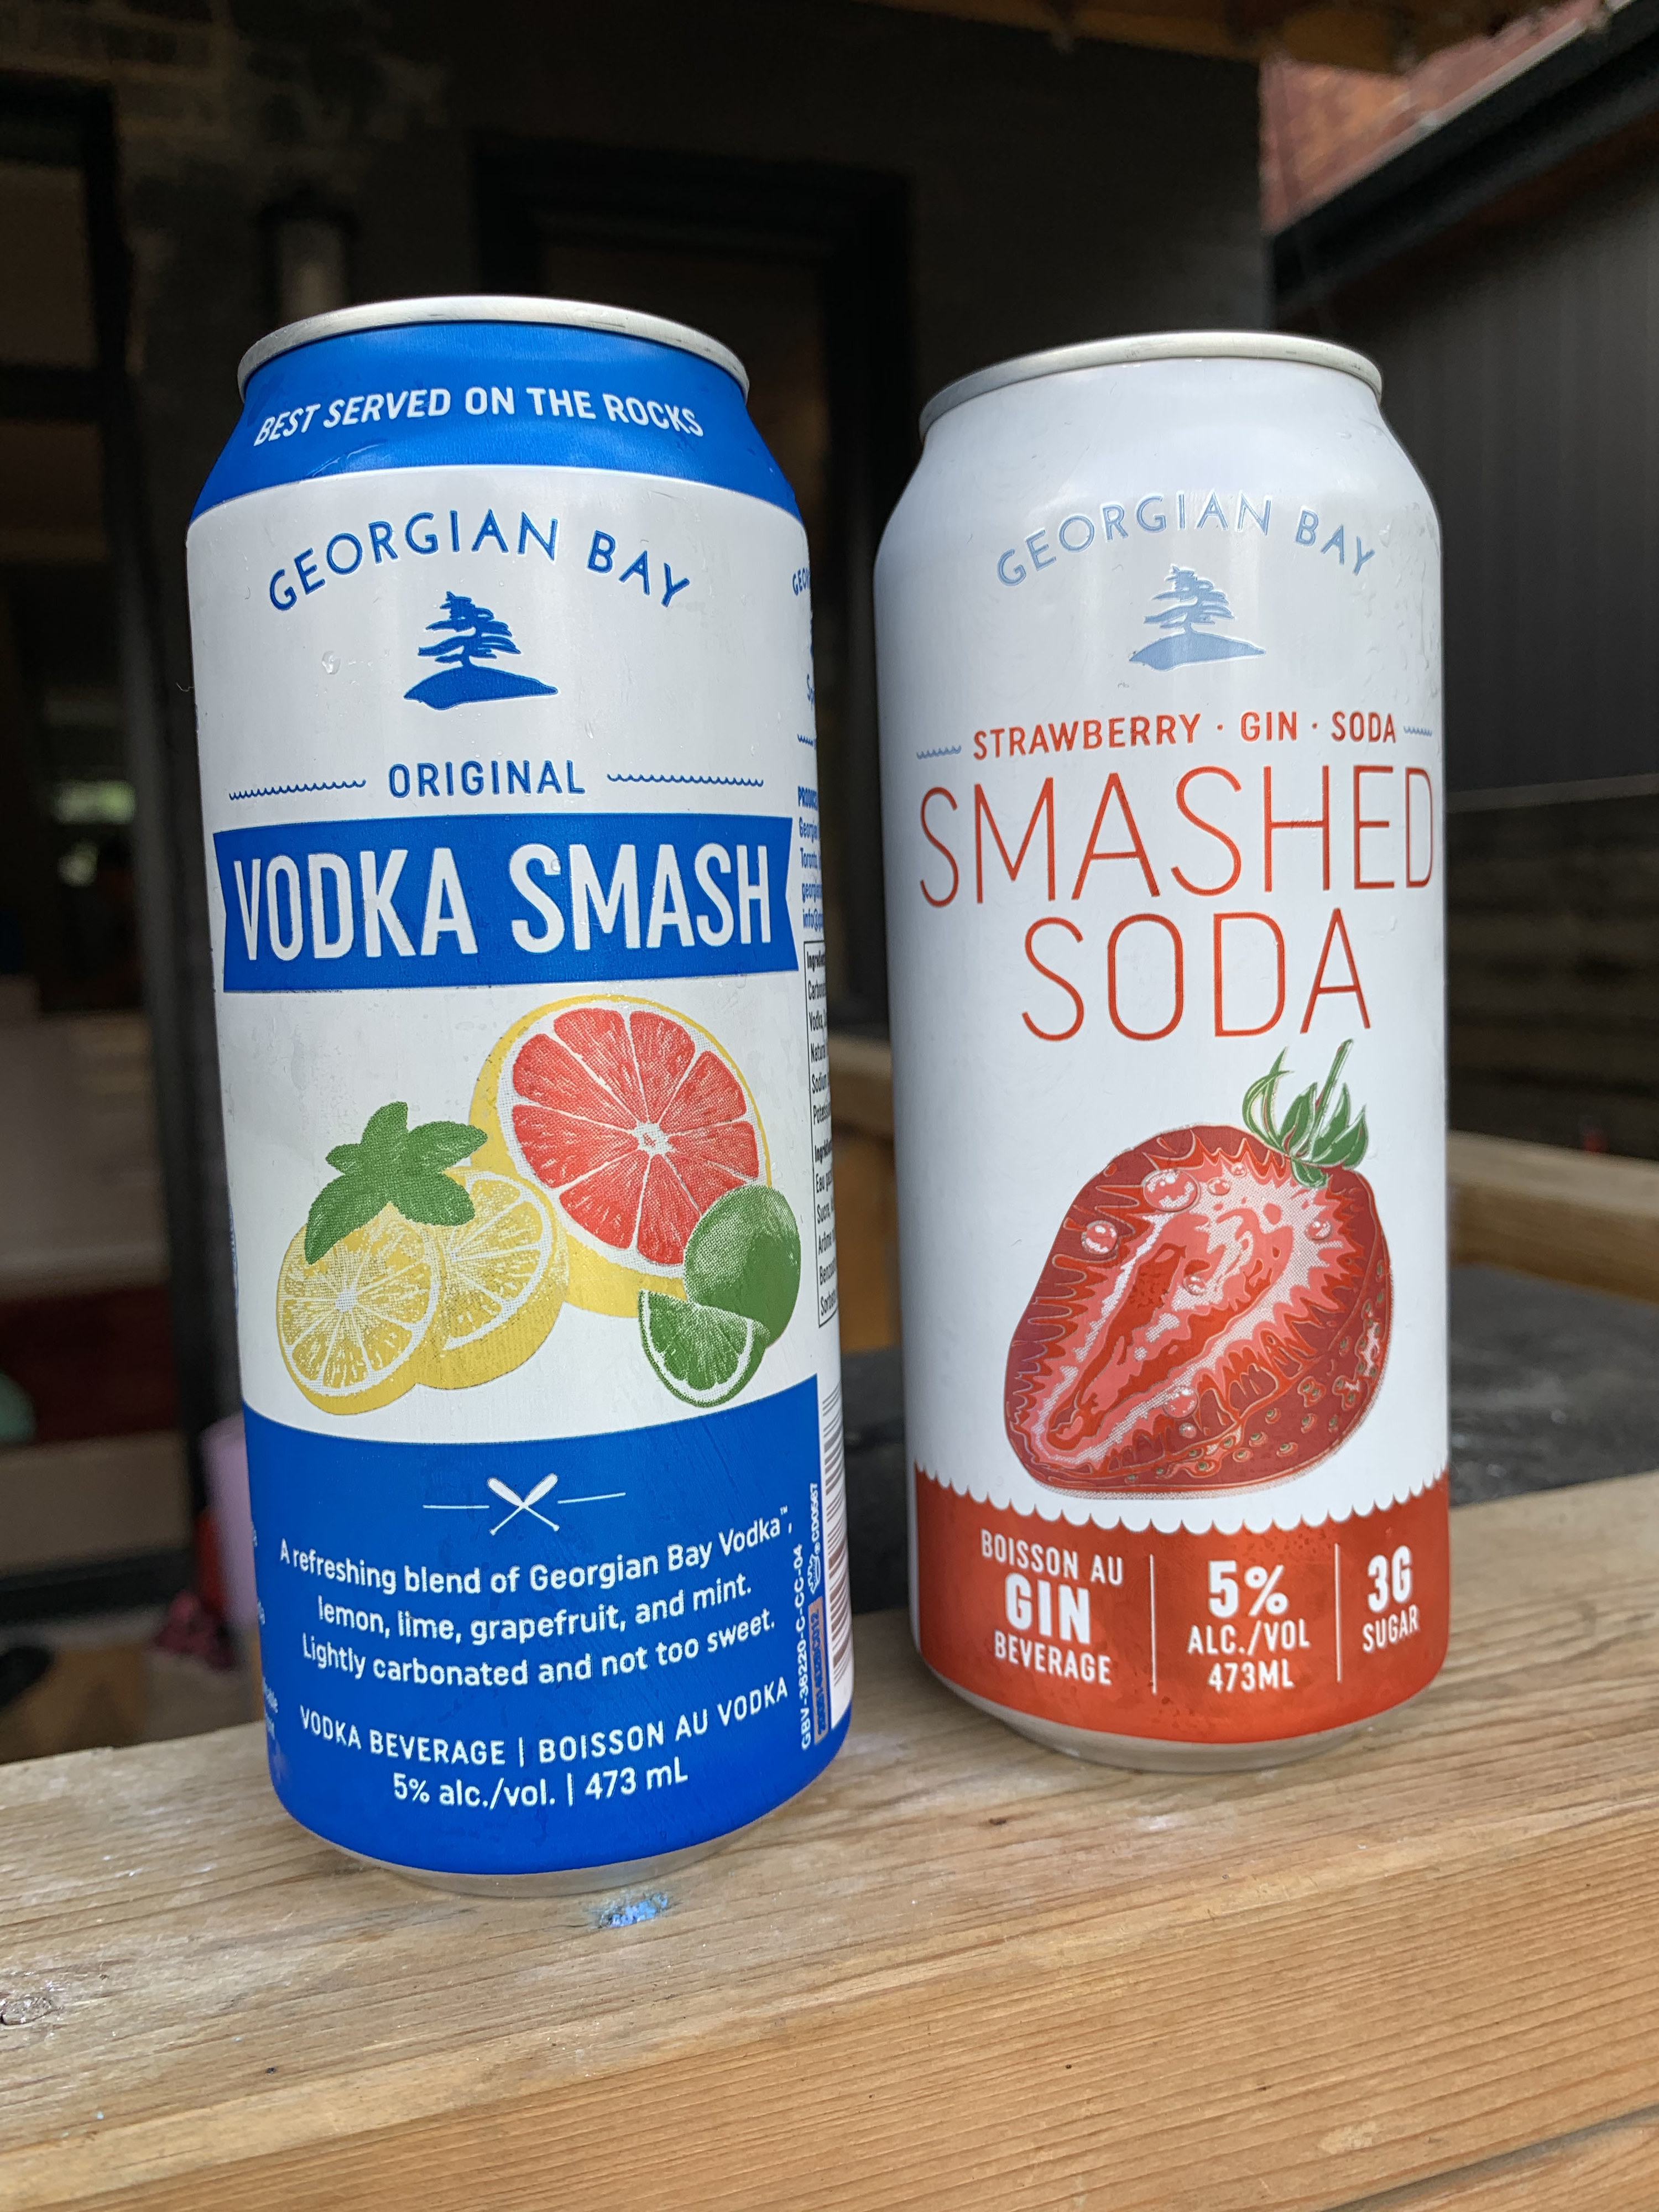 Two cans of Georgian Bay drinks – one is Vodka Smash and is blue and white with citrus illustrations on front, and the other is Smashed Soda (Gin) in red and white with an illustration of a strawberry.